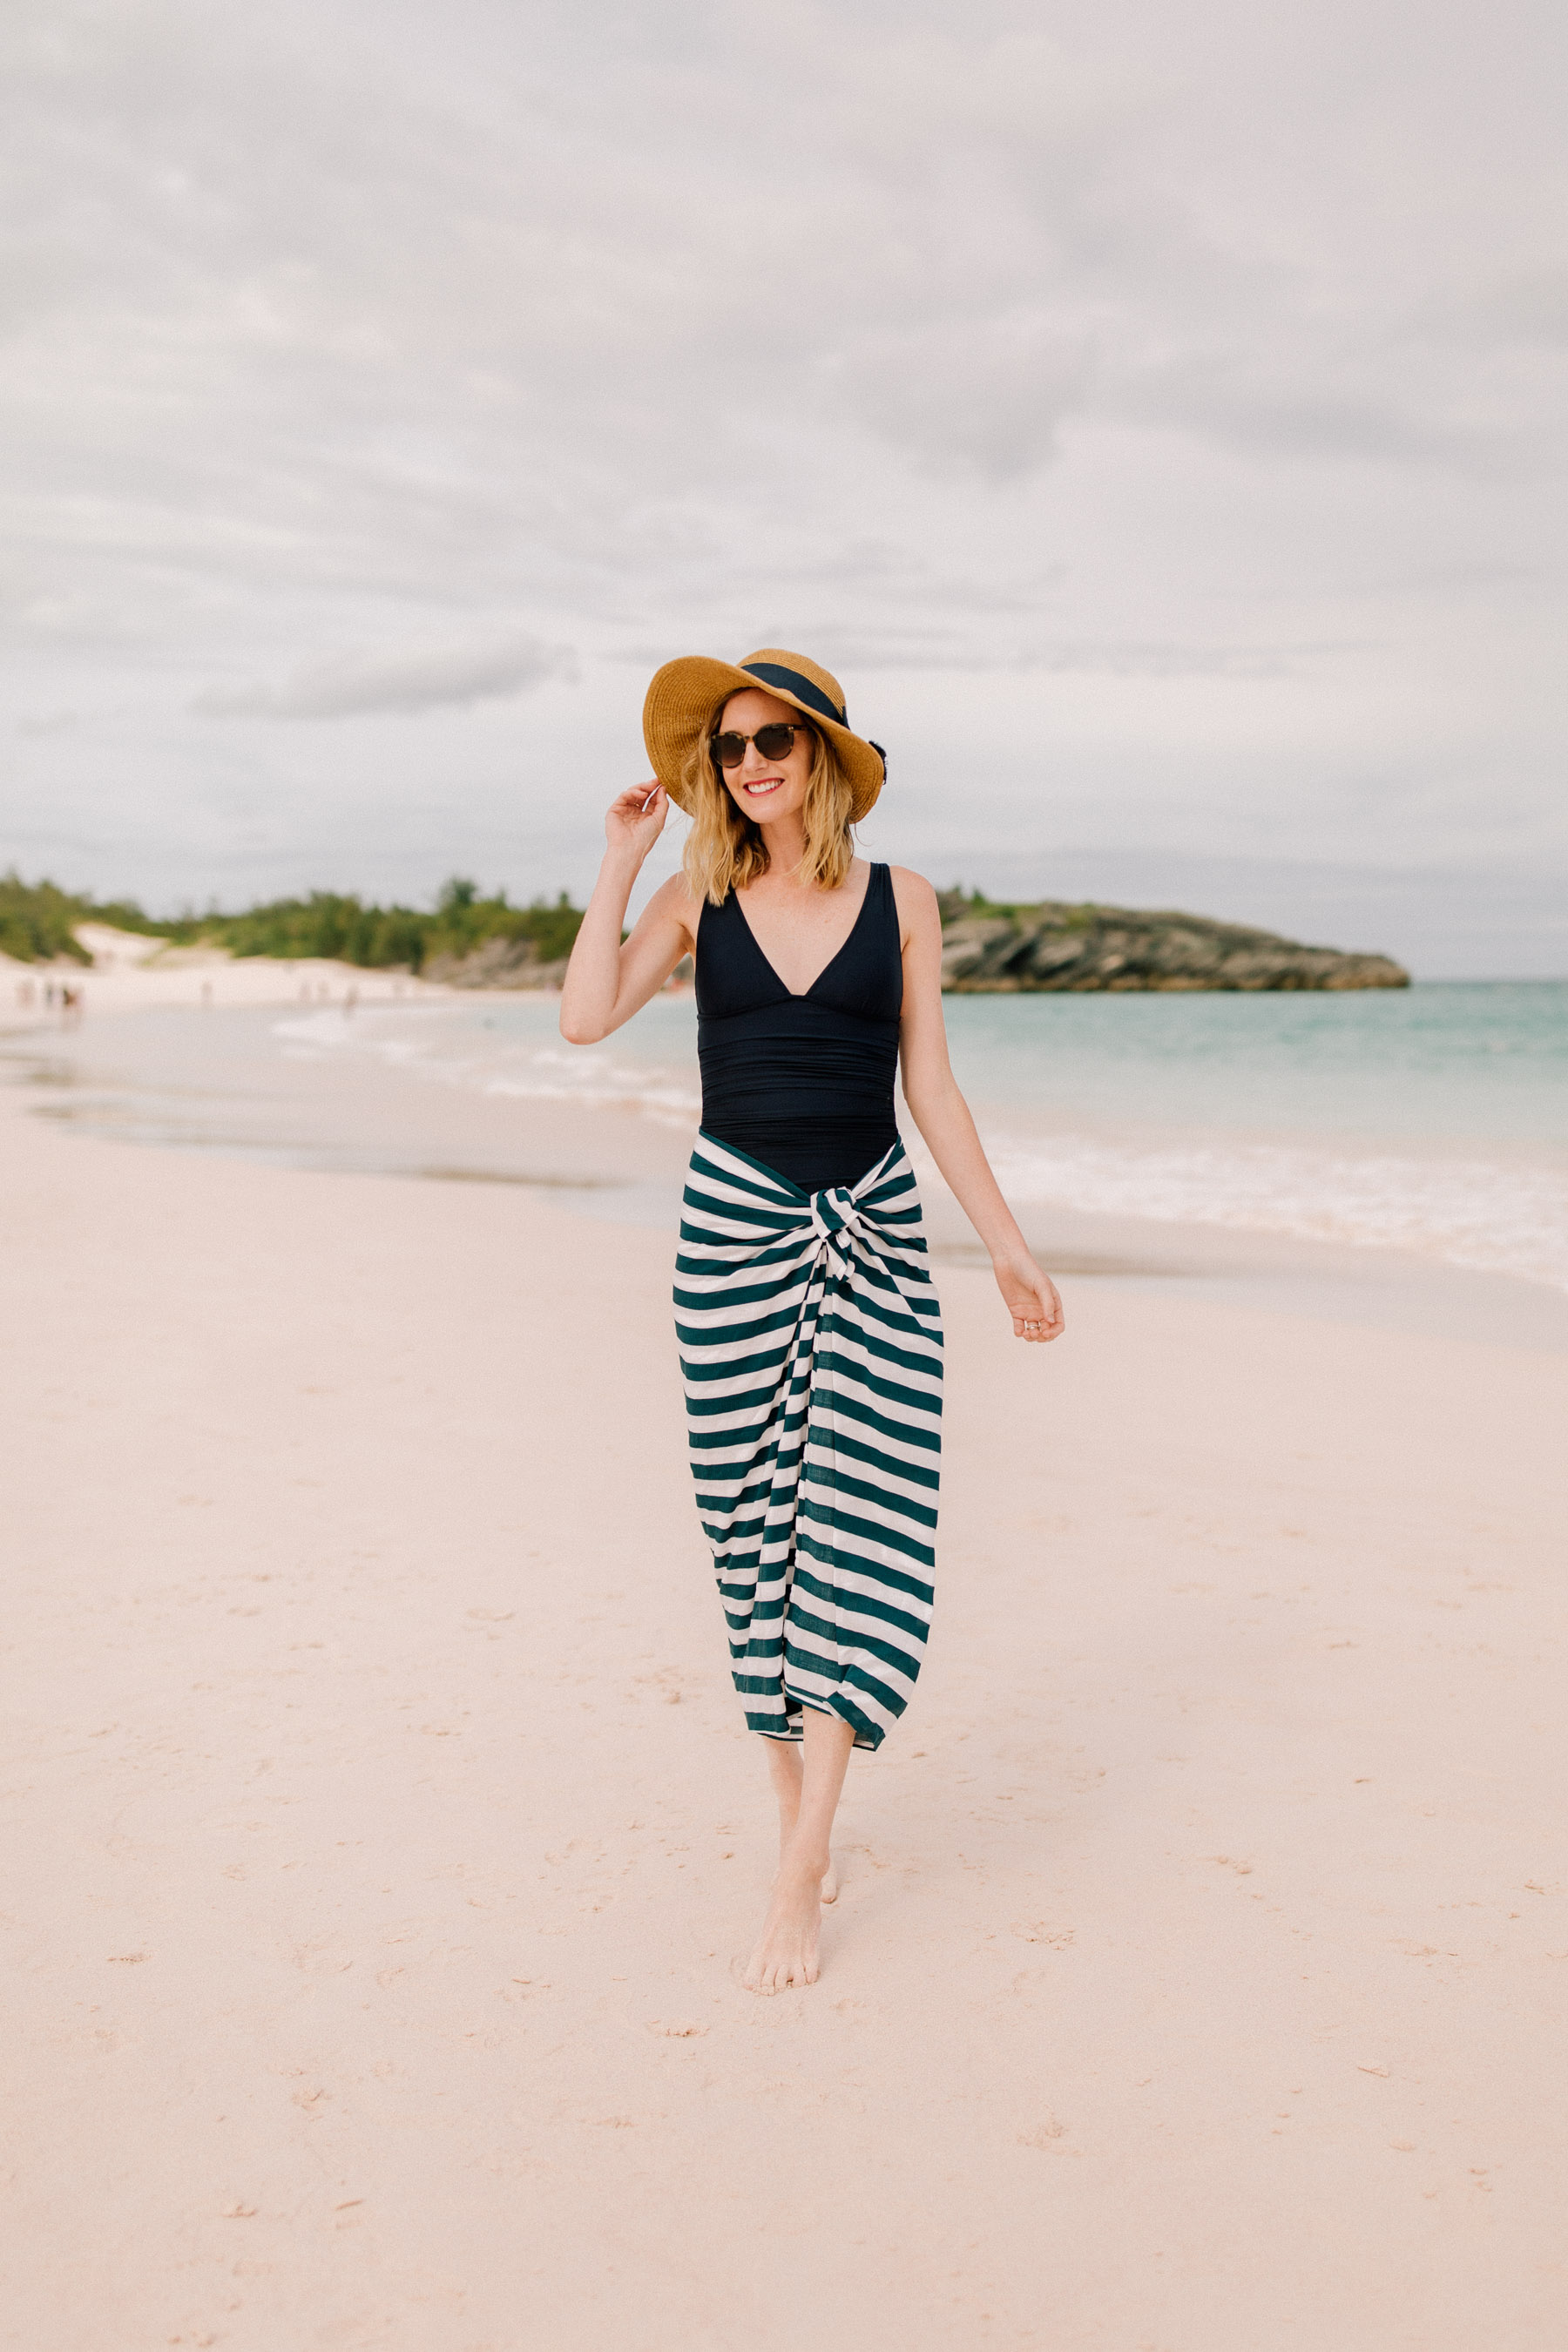 Navy Striped Sarong  / J.Crew Bathing Suit